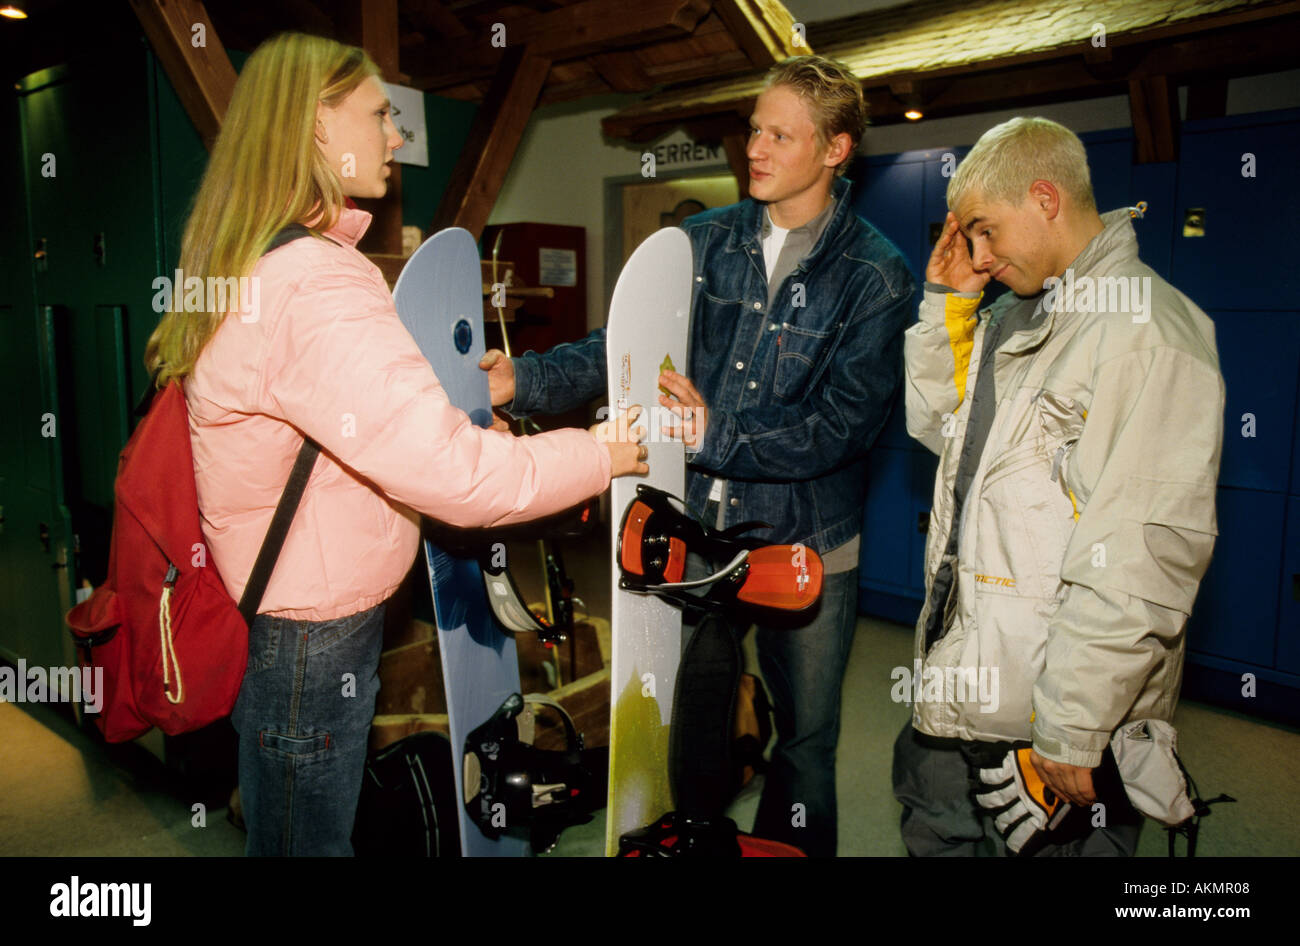 Germany Free time Young persons snowboarding they are talking to each other  - Stock Image